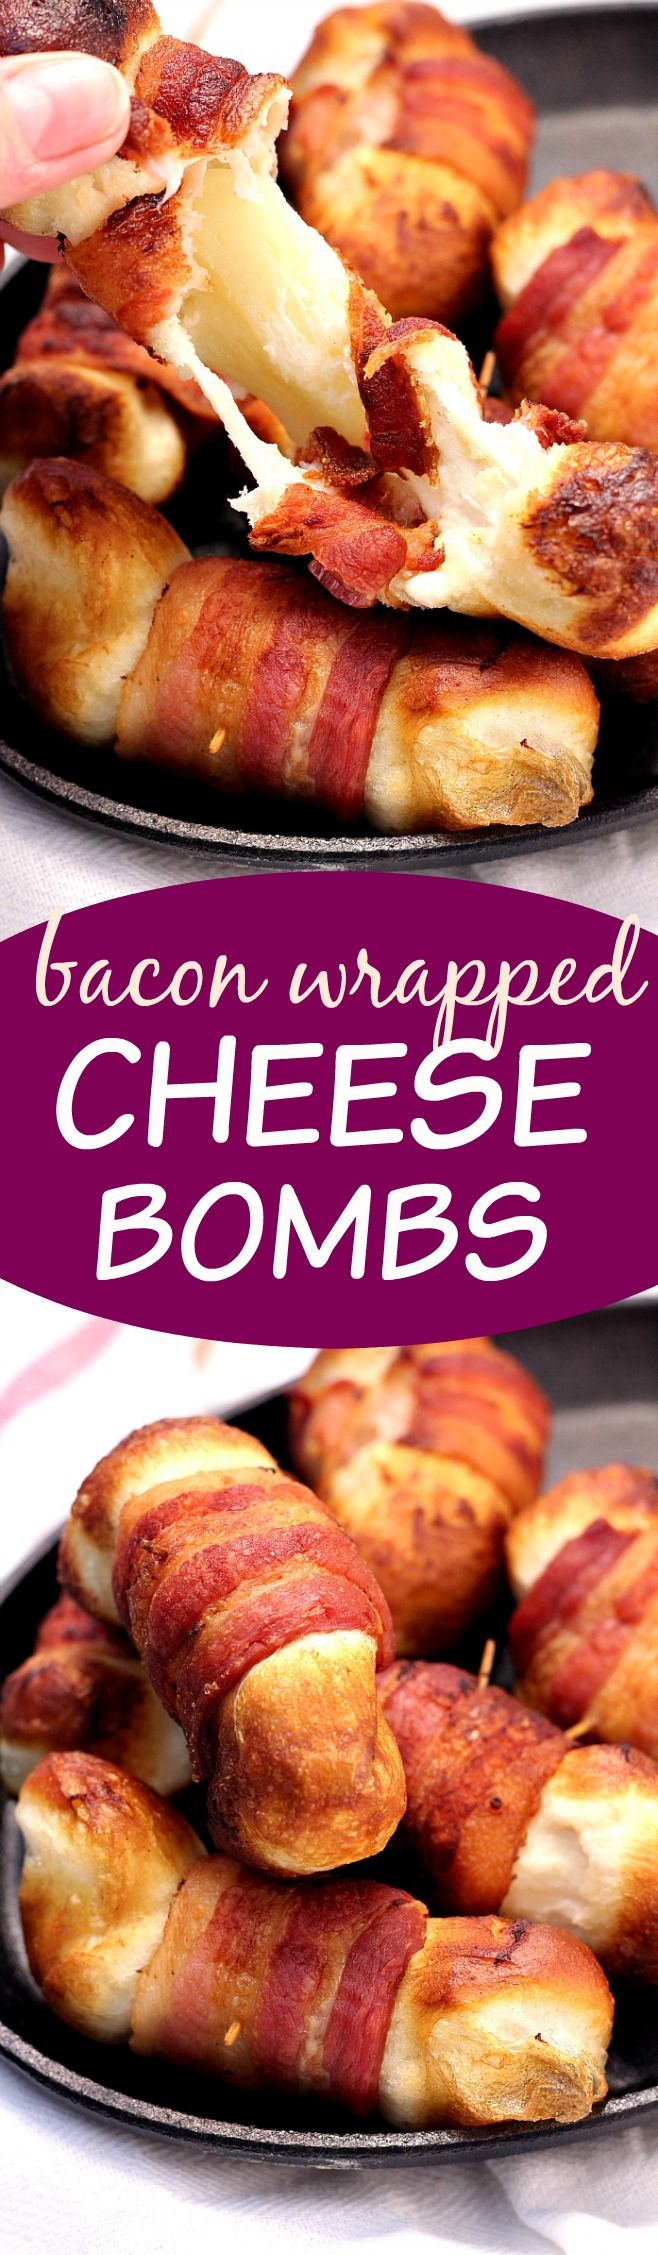 bacon cheese bombs long Bacon Wrapped Cheese Bombs Recipe